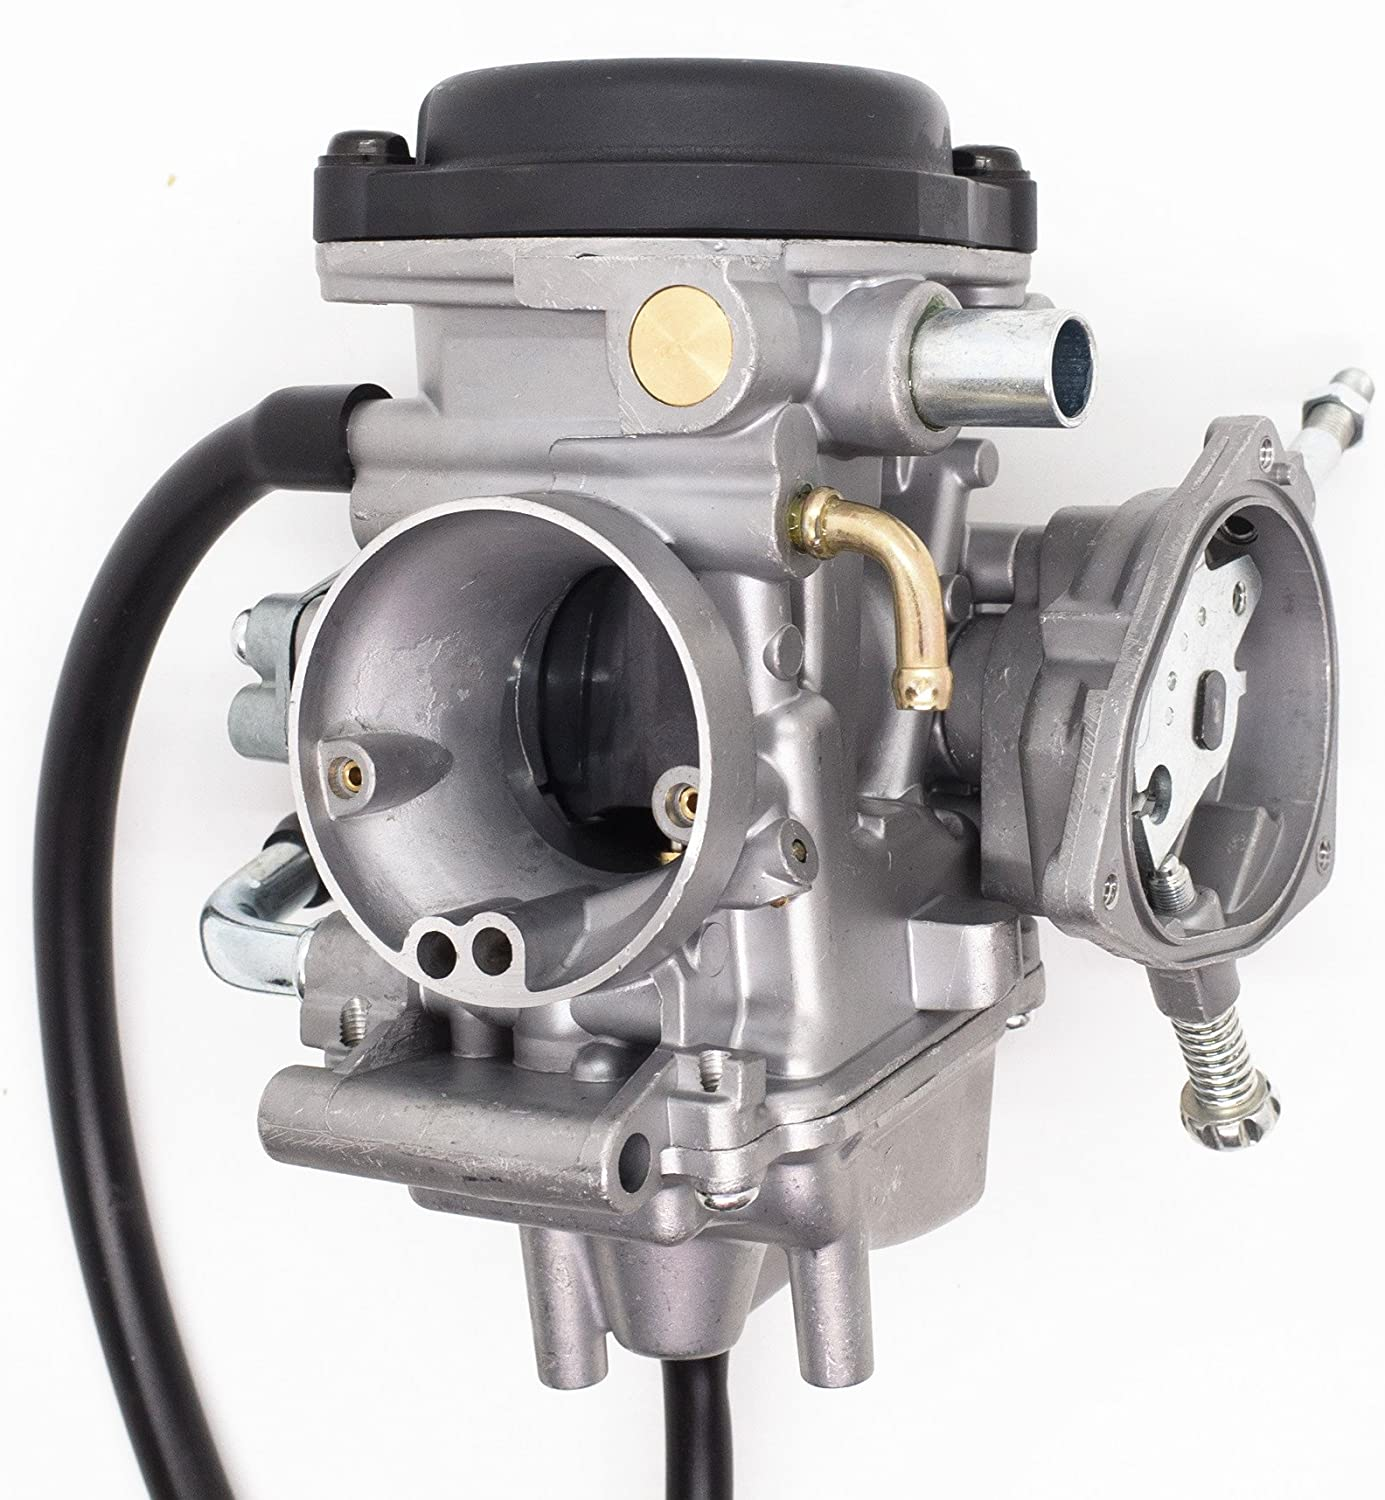 FITS OUTLANDER MAX 400 4X4 CARBURETOR For 2004-2008 BOMBARDIER CAN-AM